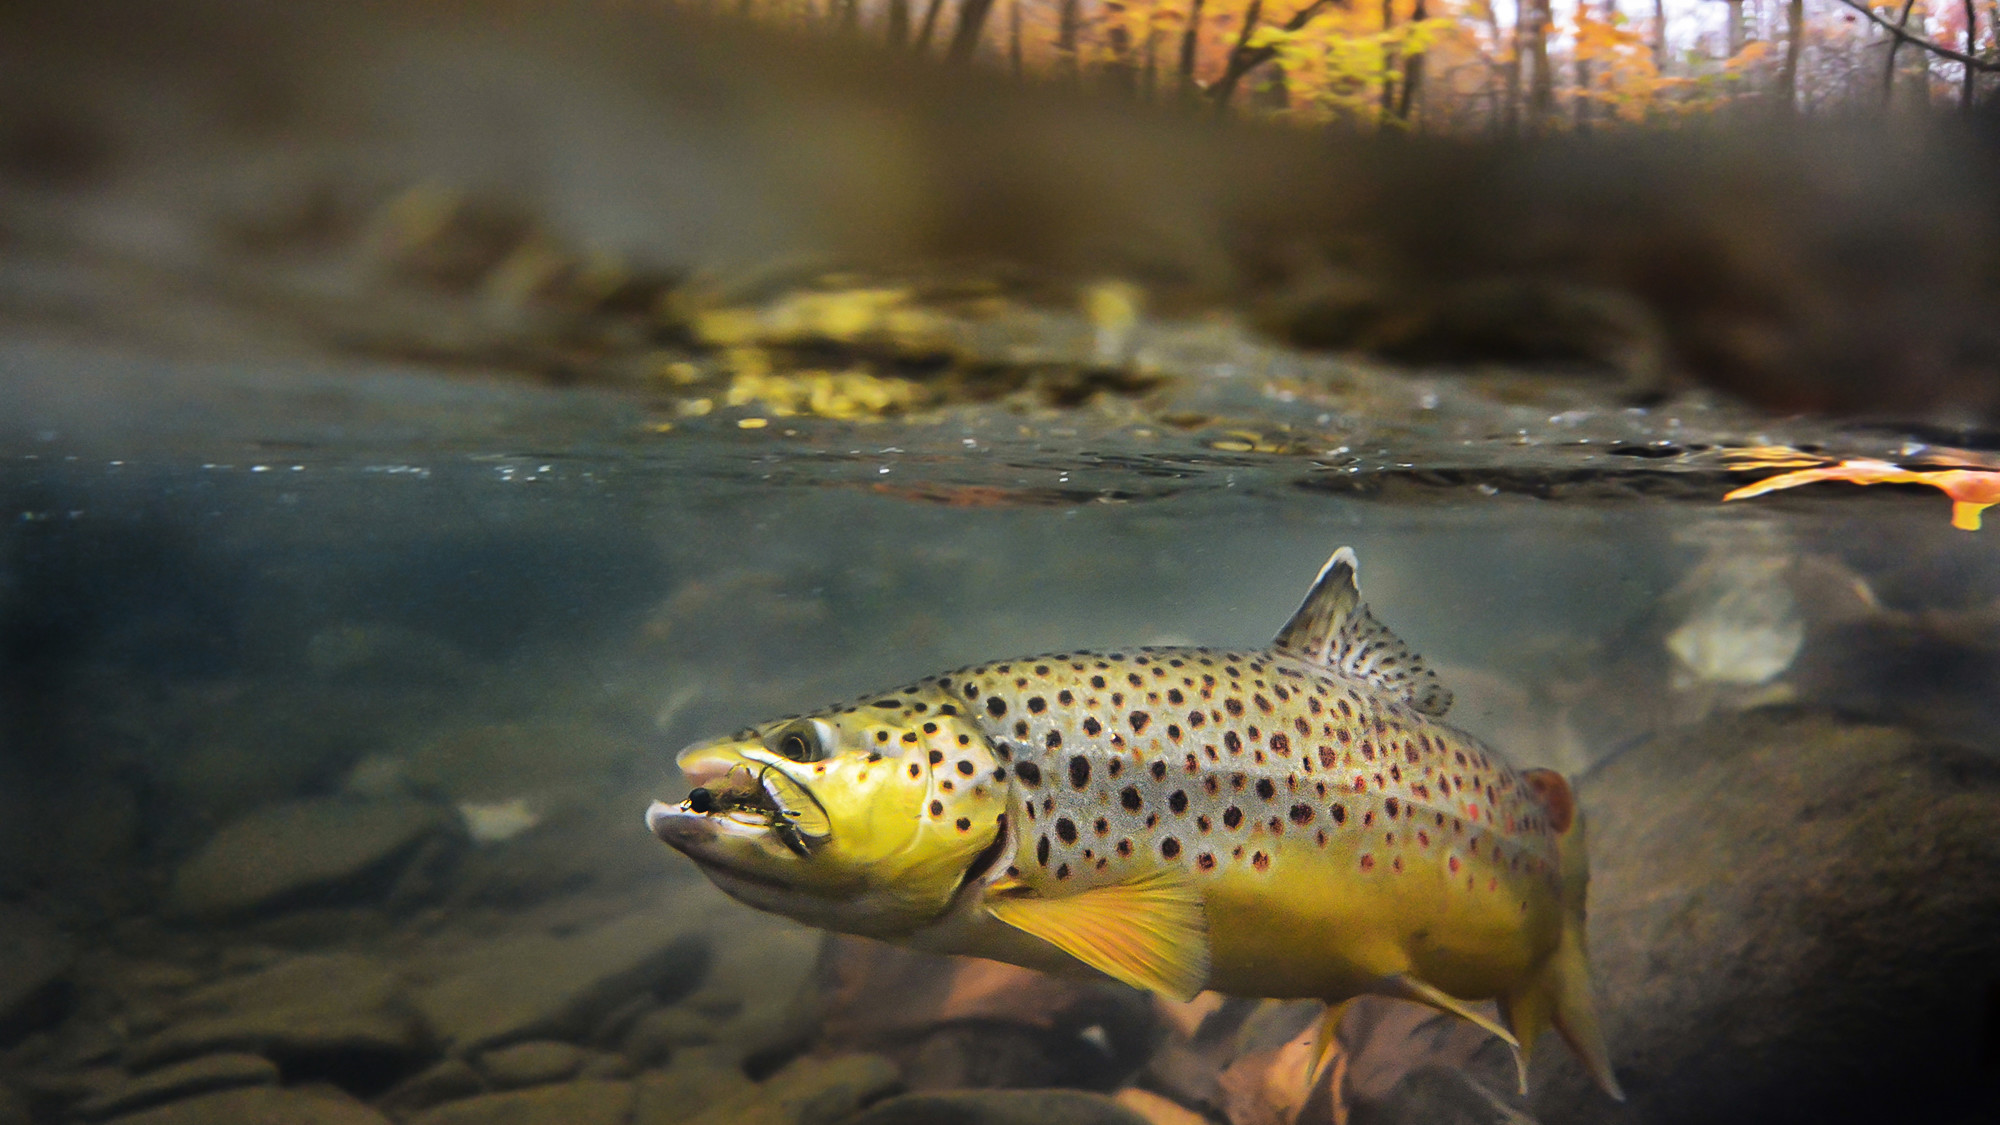 trout fishing wallpaper 45 images